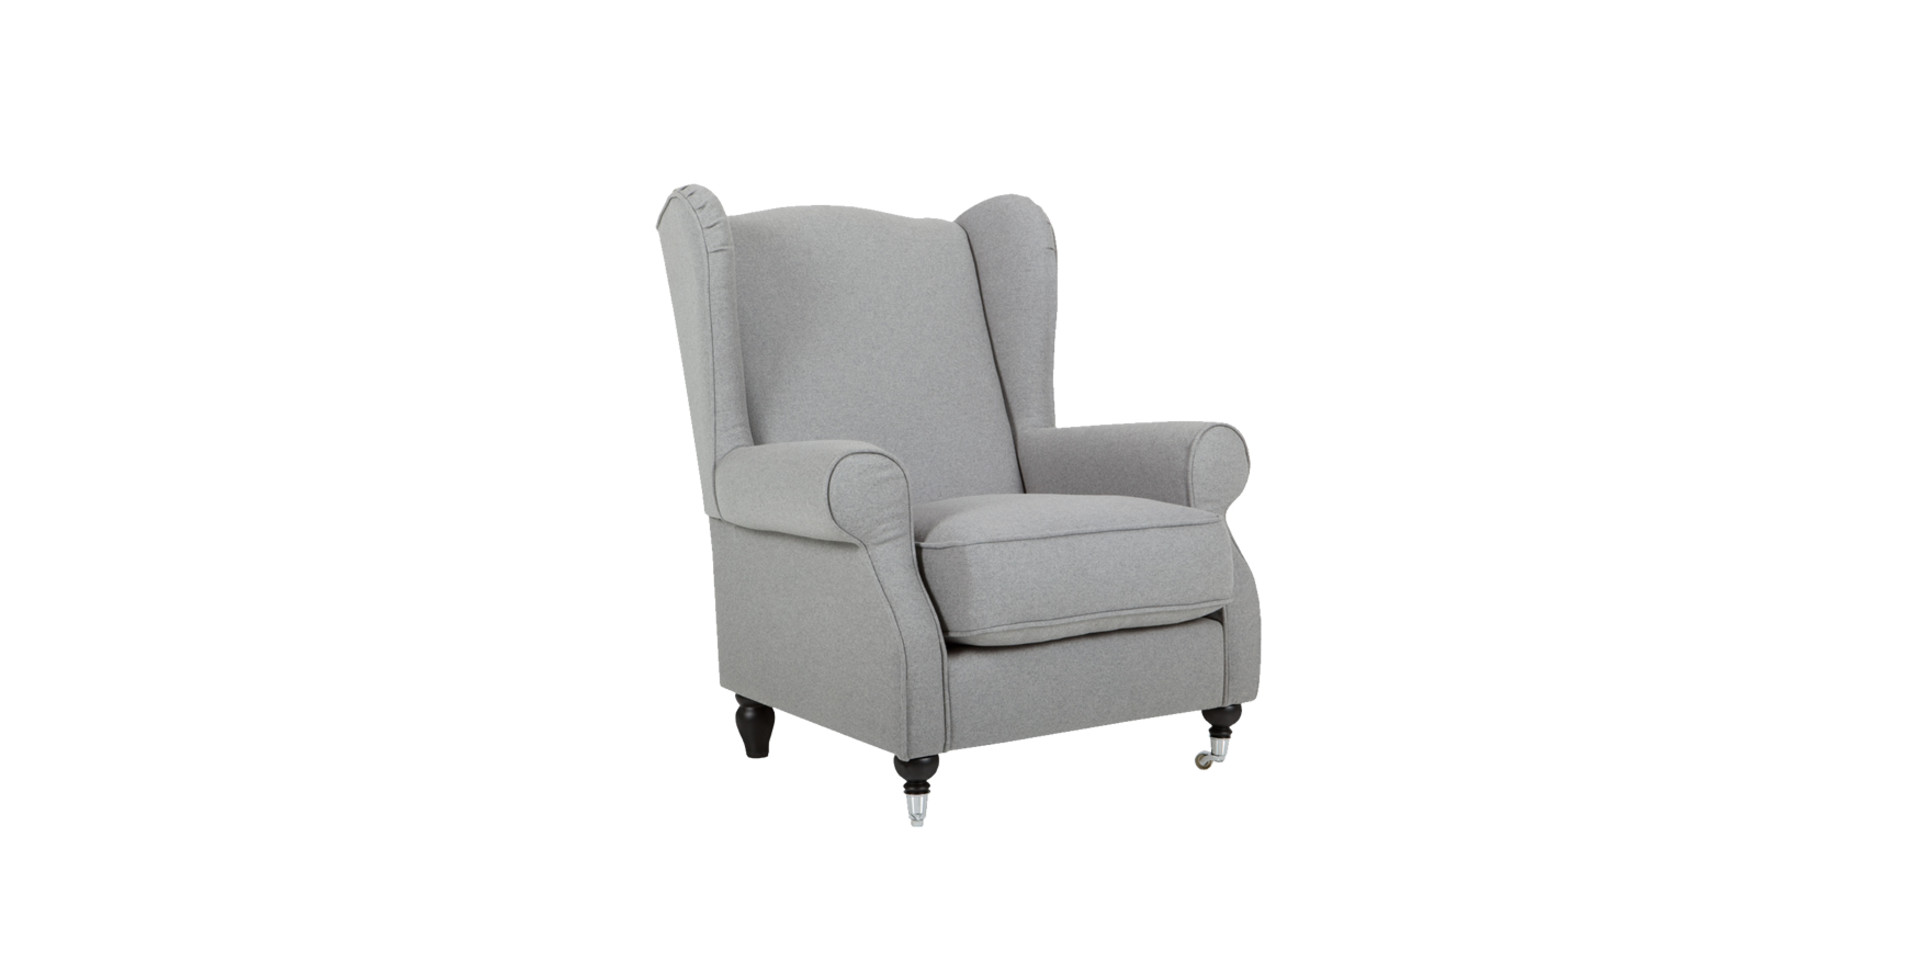 sits-humphrey-fauteuil-armchair_high_panno1000_light_grey_2